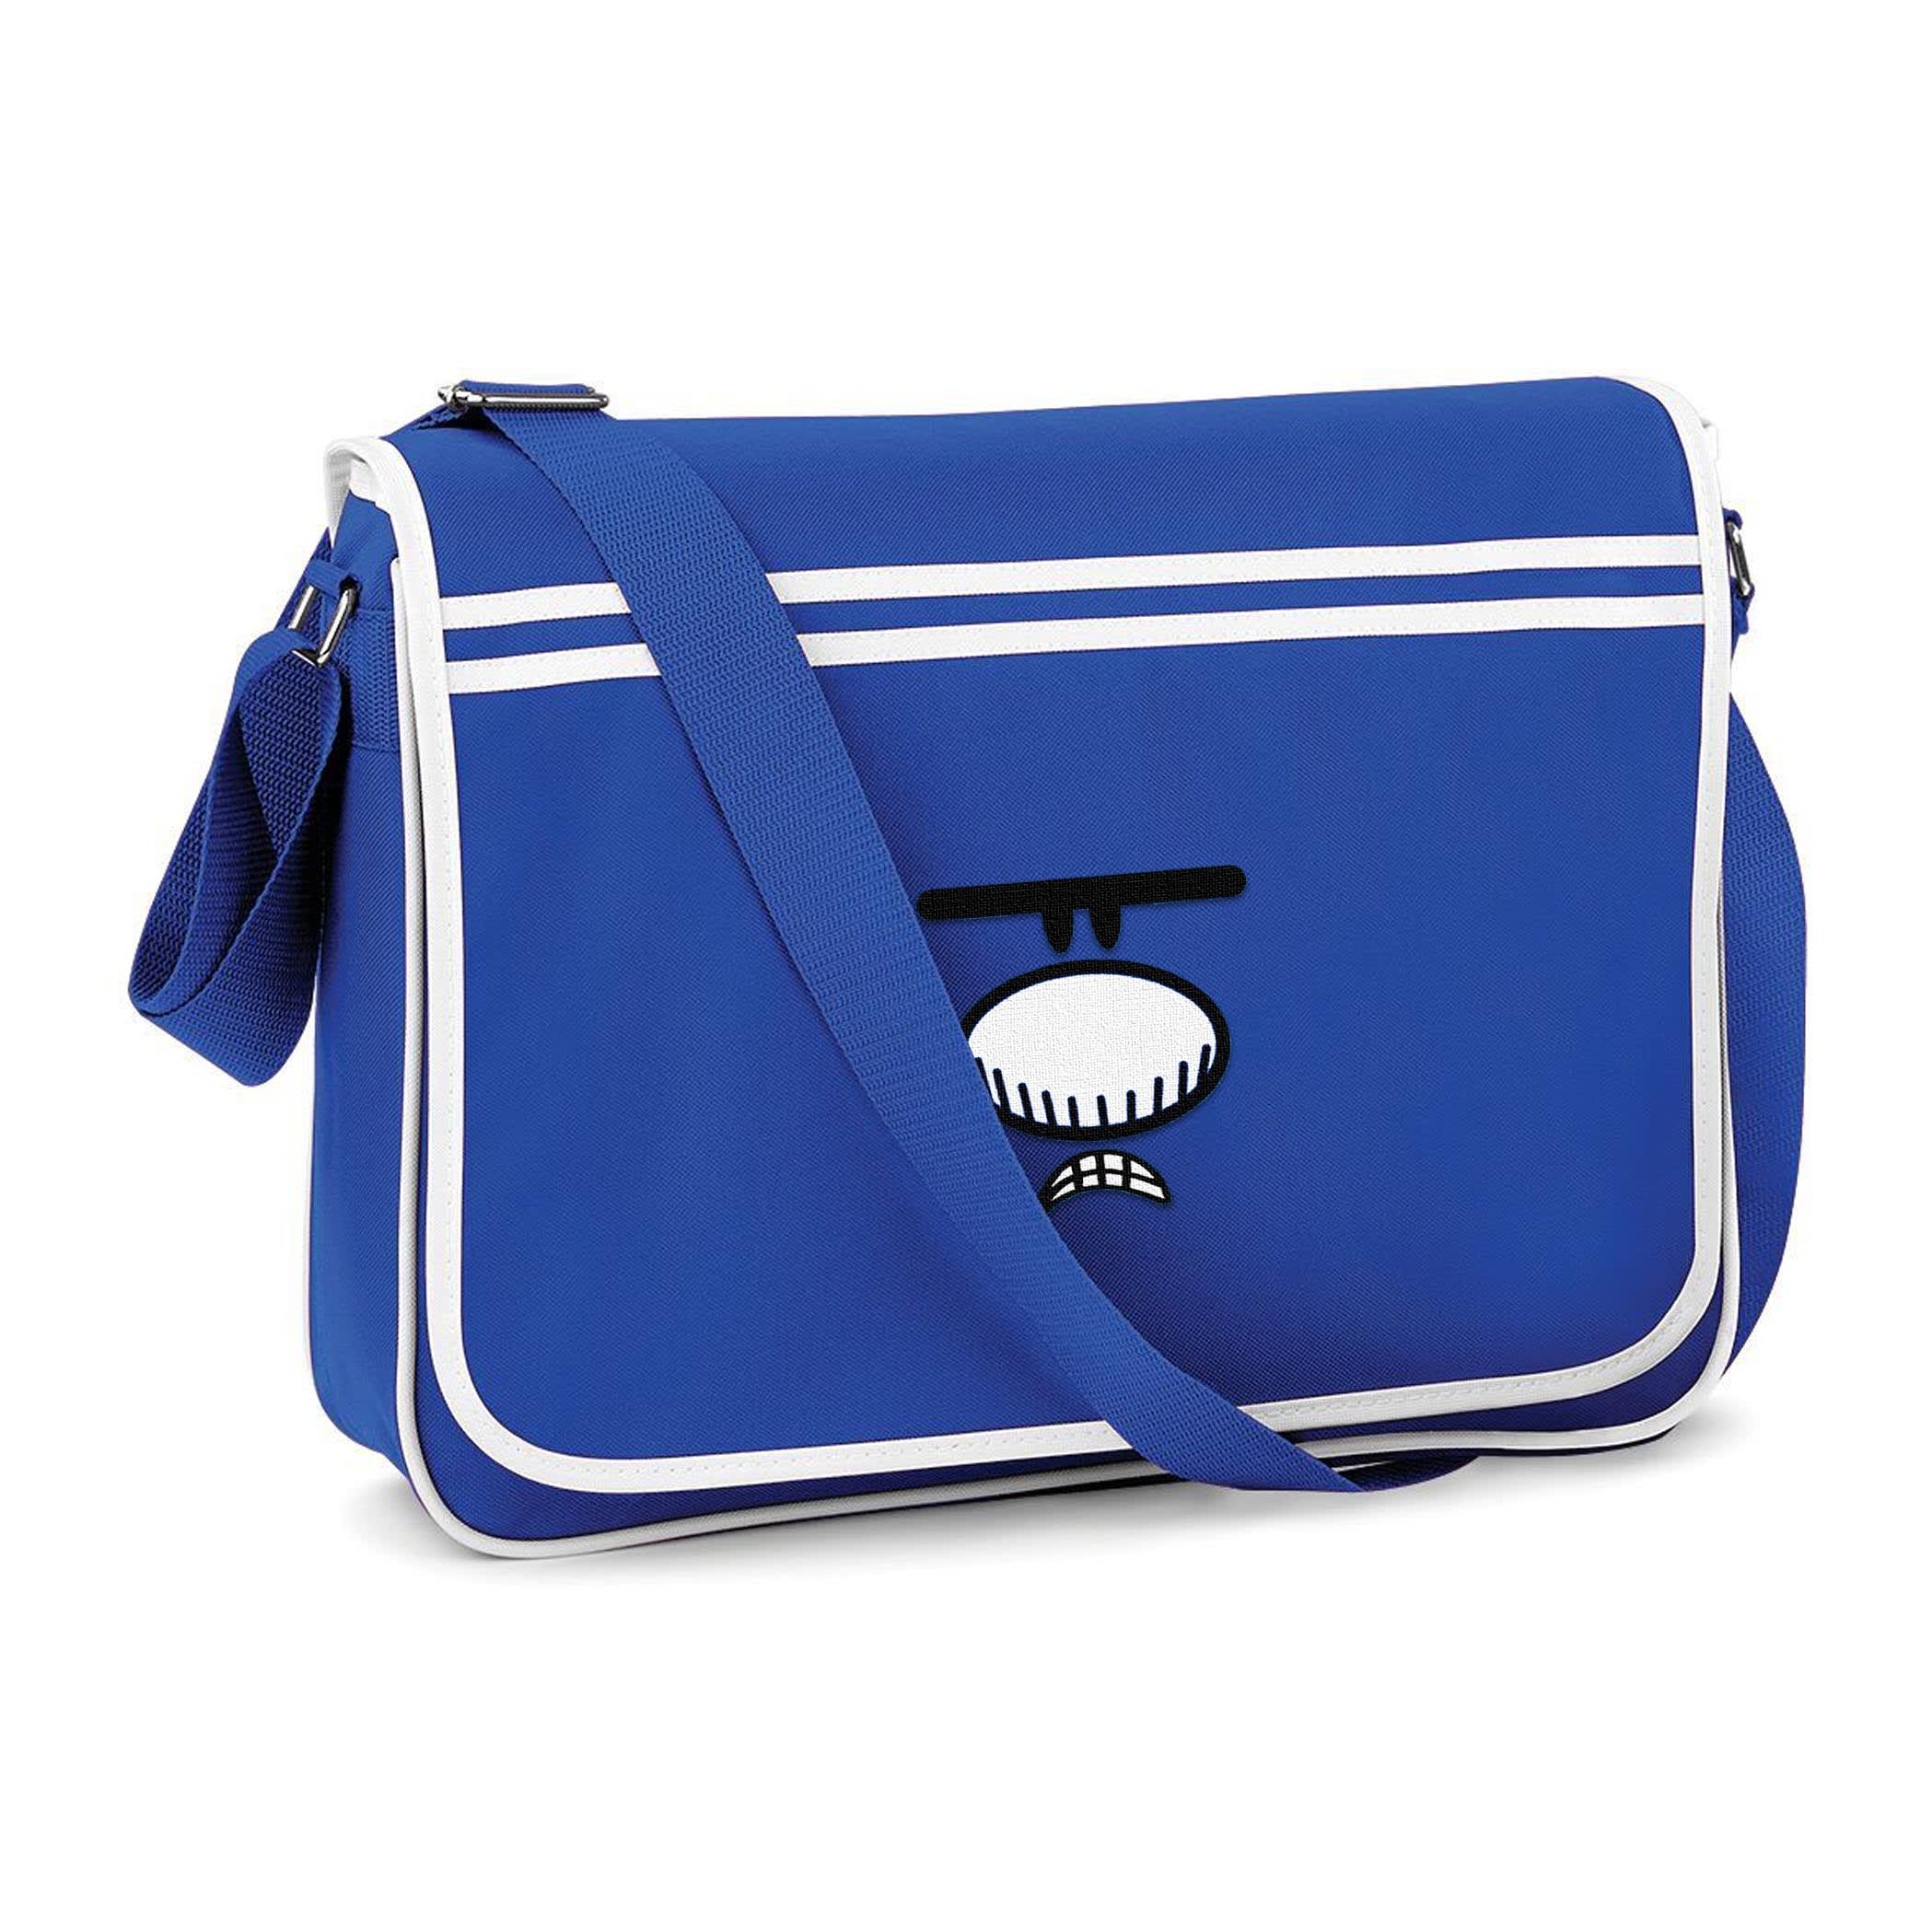 Mr Grumpy Messenger Bag